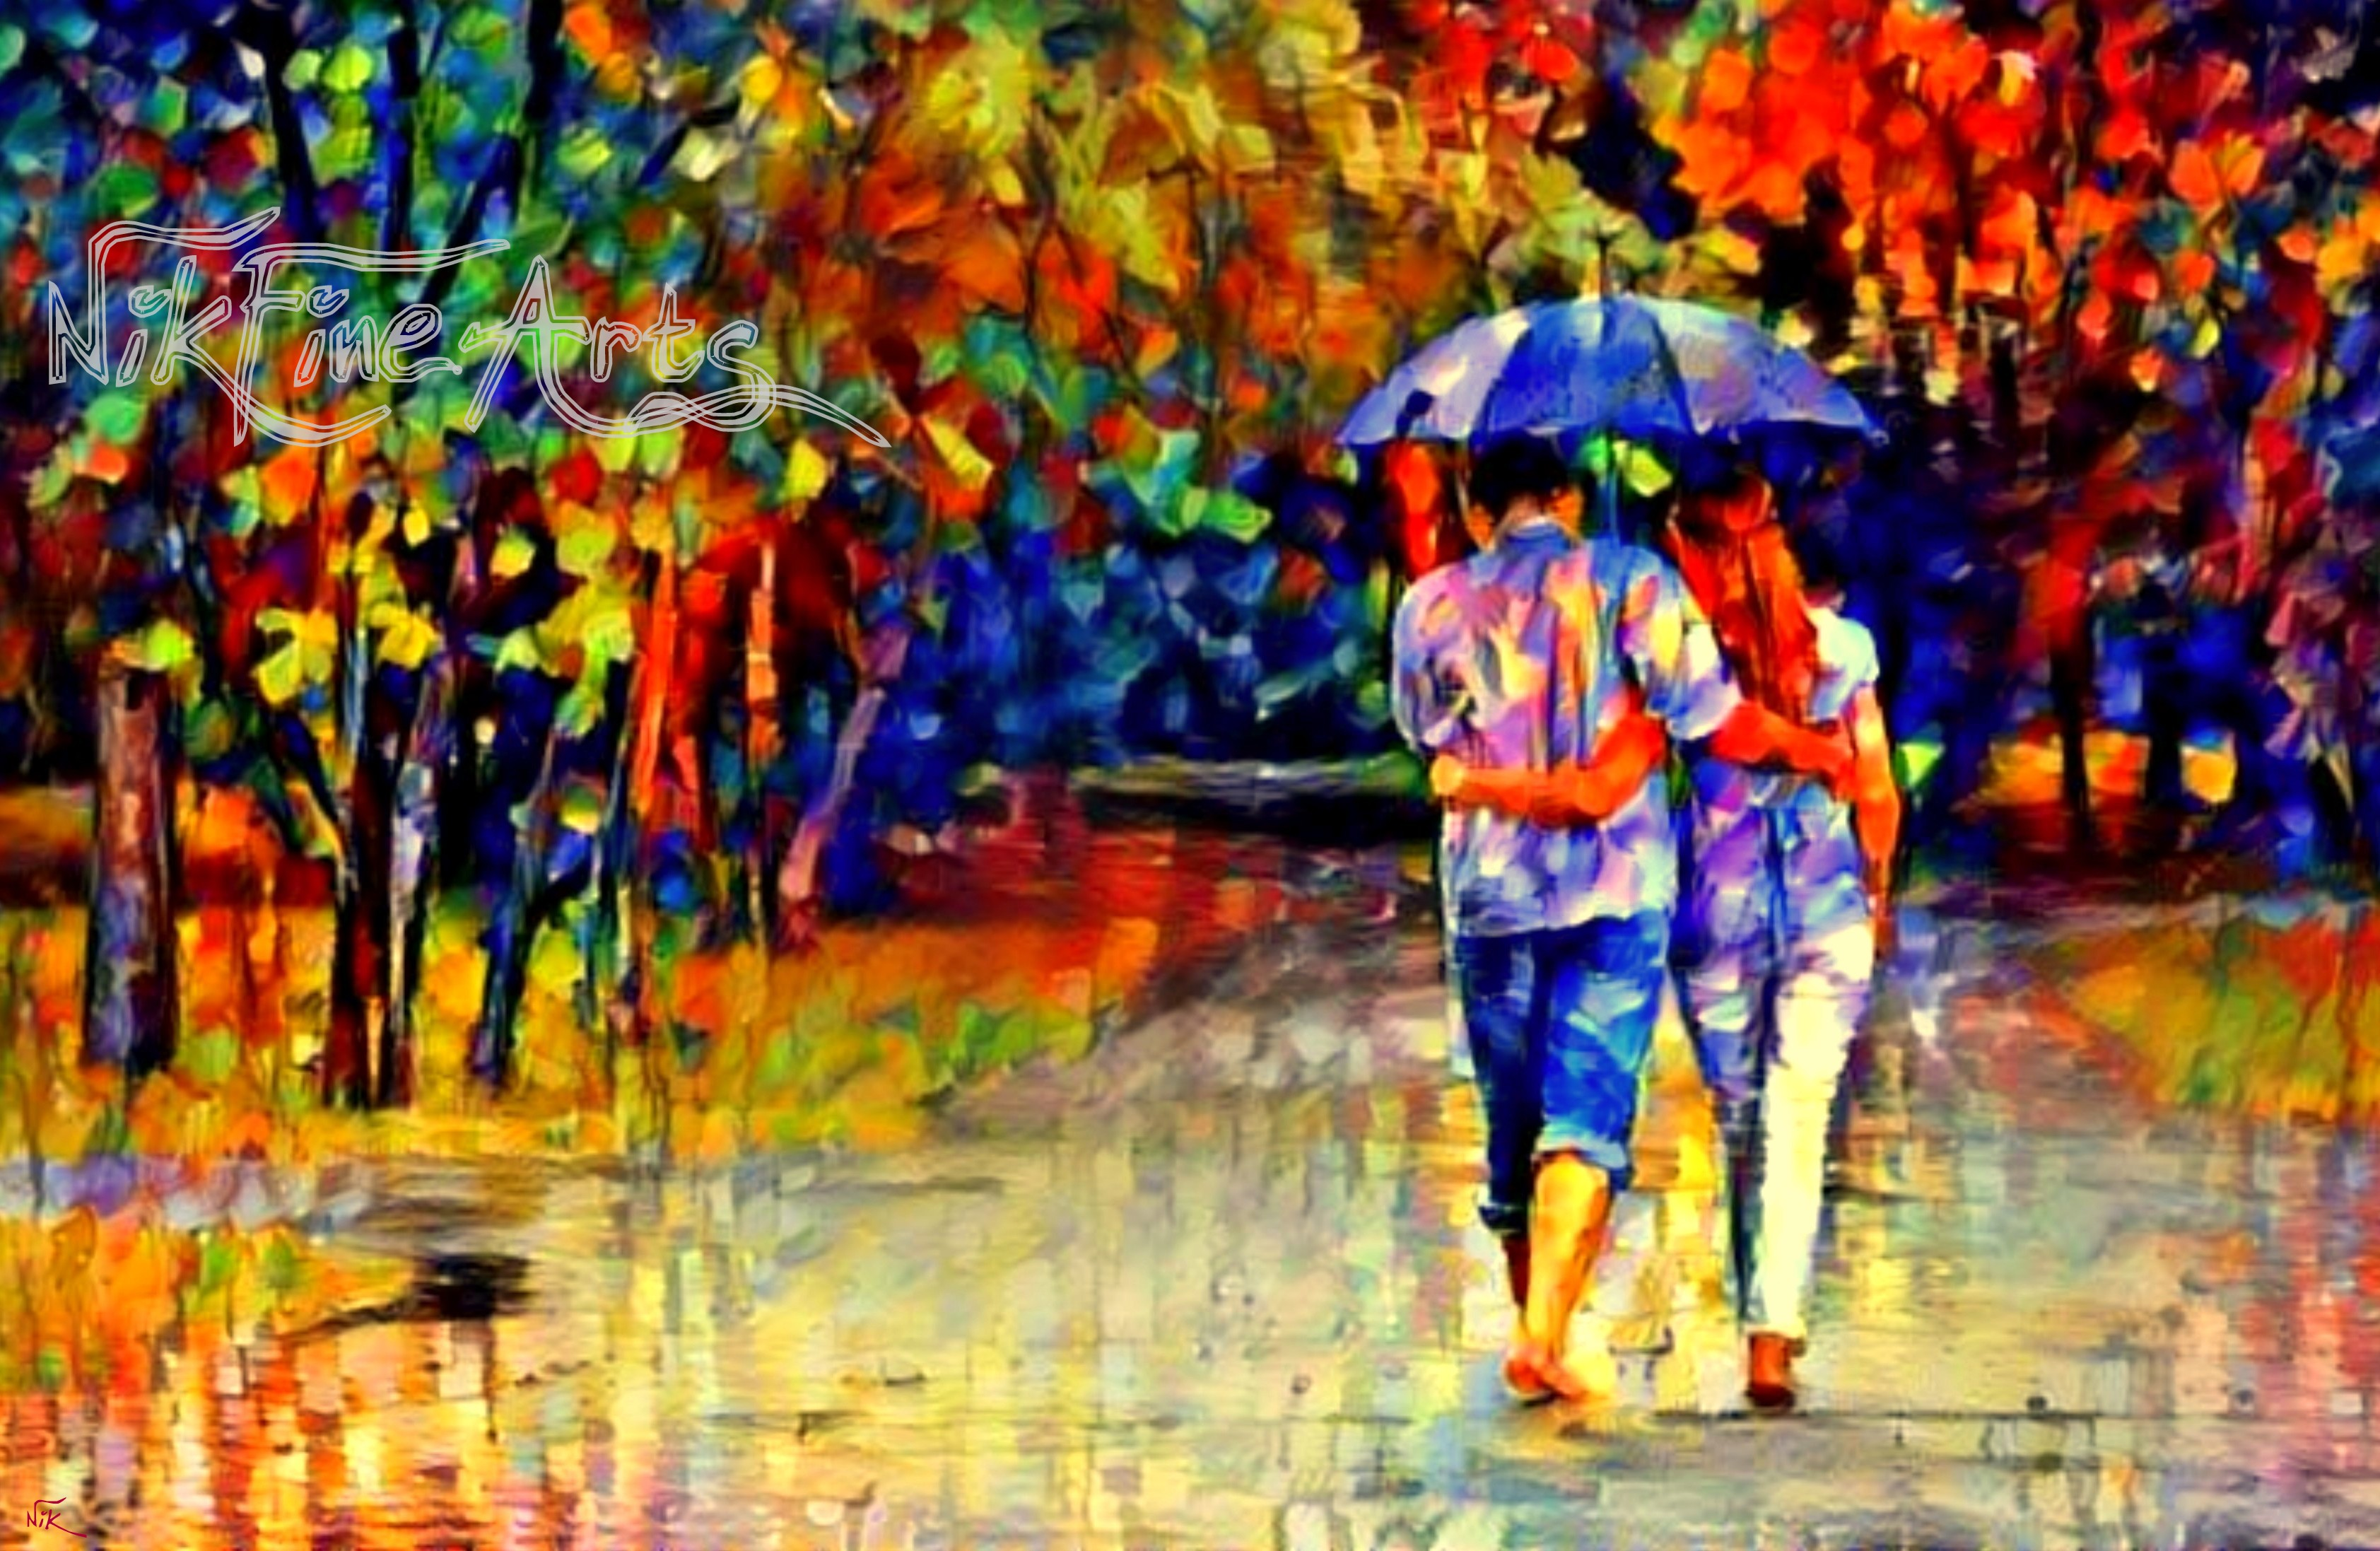 Images Of Lovers In Rain: LOVERS WALKING IN THE RAIN